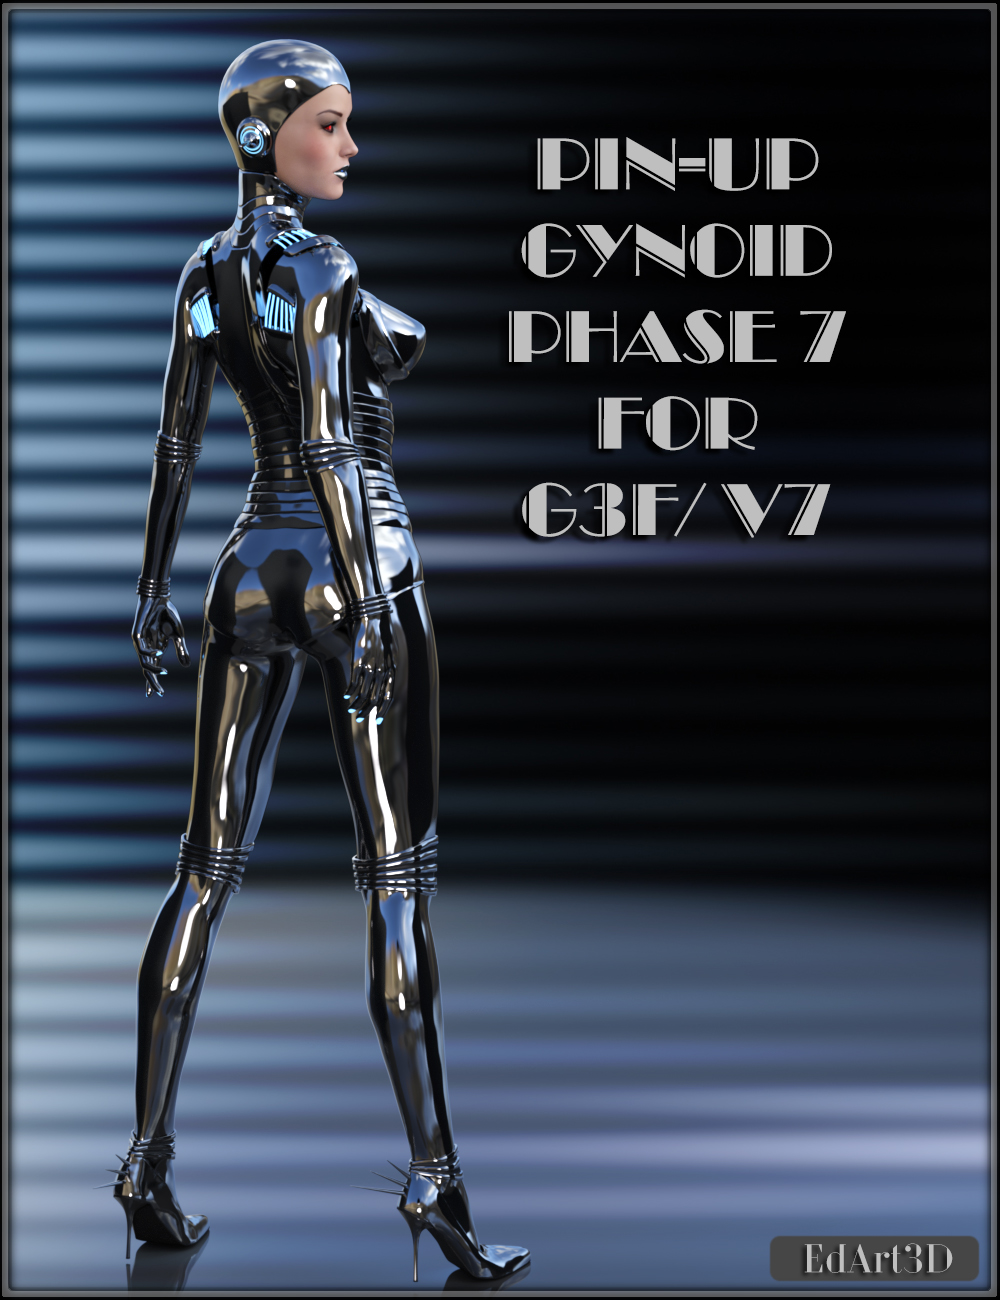 Pin-Up Gynoid Phase7 for G3F or V7 by EdArt3D